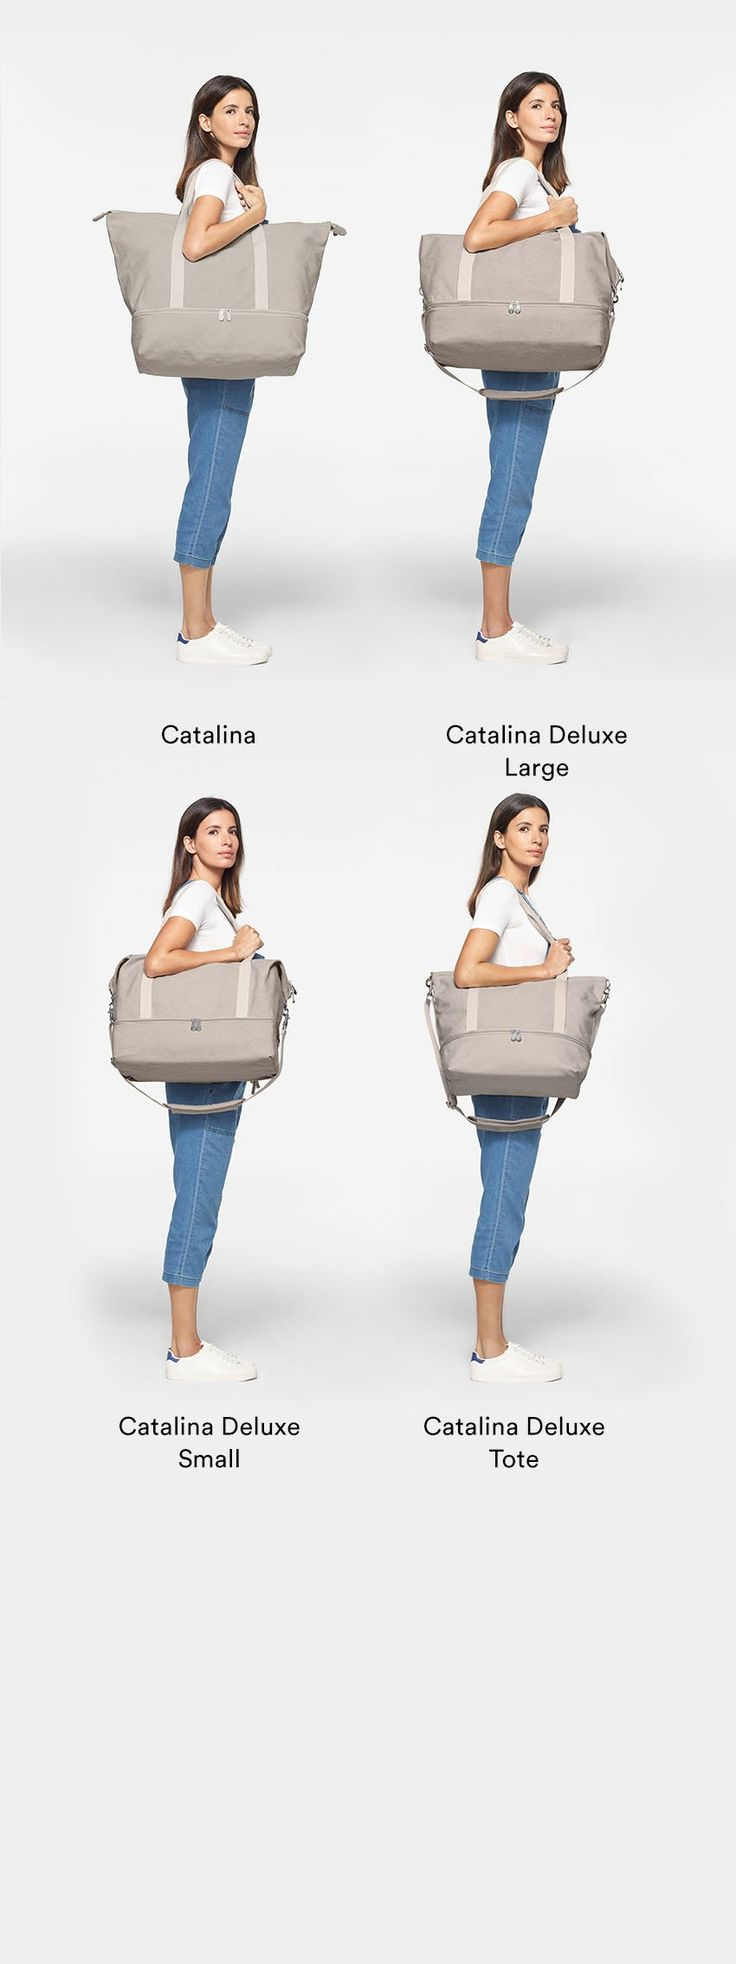 Discover the Catalina Deluxe, a canvas tote weekender bag by Lo & Sons. Features a bottom pocket for packing shoes, messenger bag strap, and back sleeve that attaches to suitcase handles to make traveling easy.